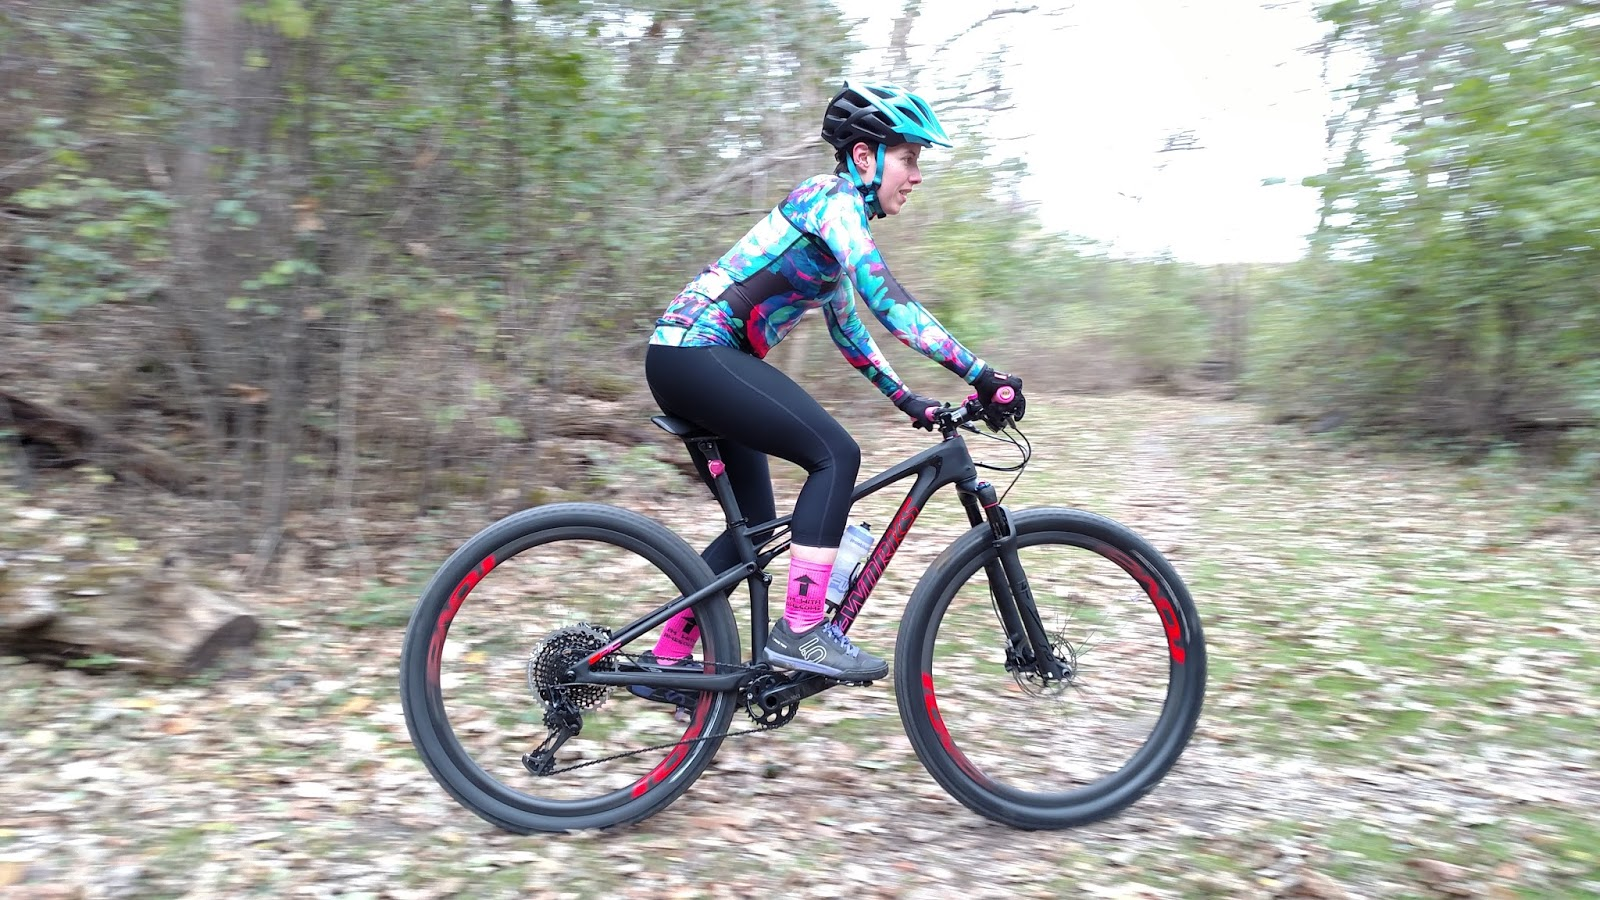 Josie's Bike Life: First Review on the Specialized Women's S